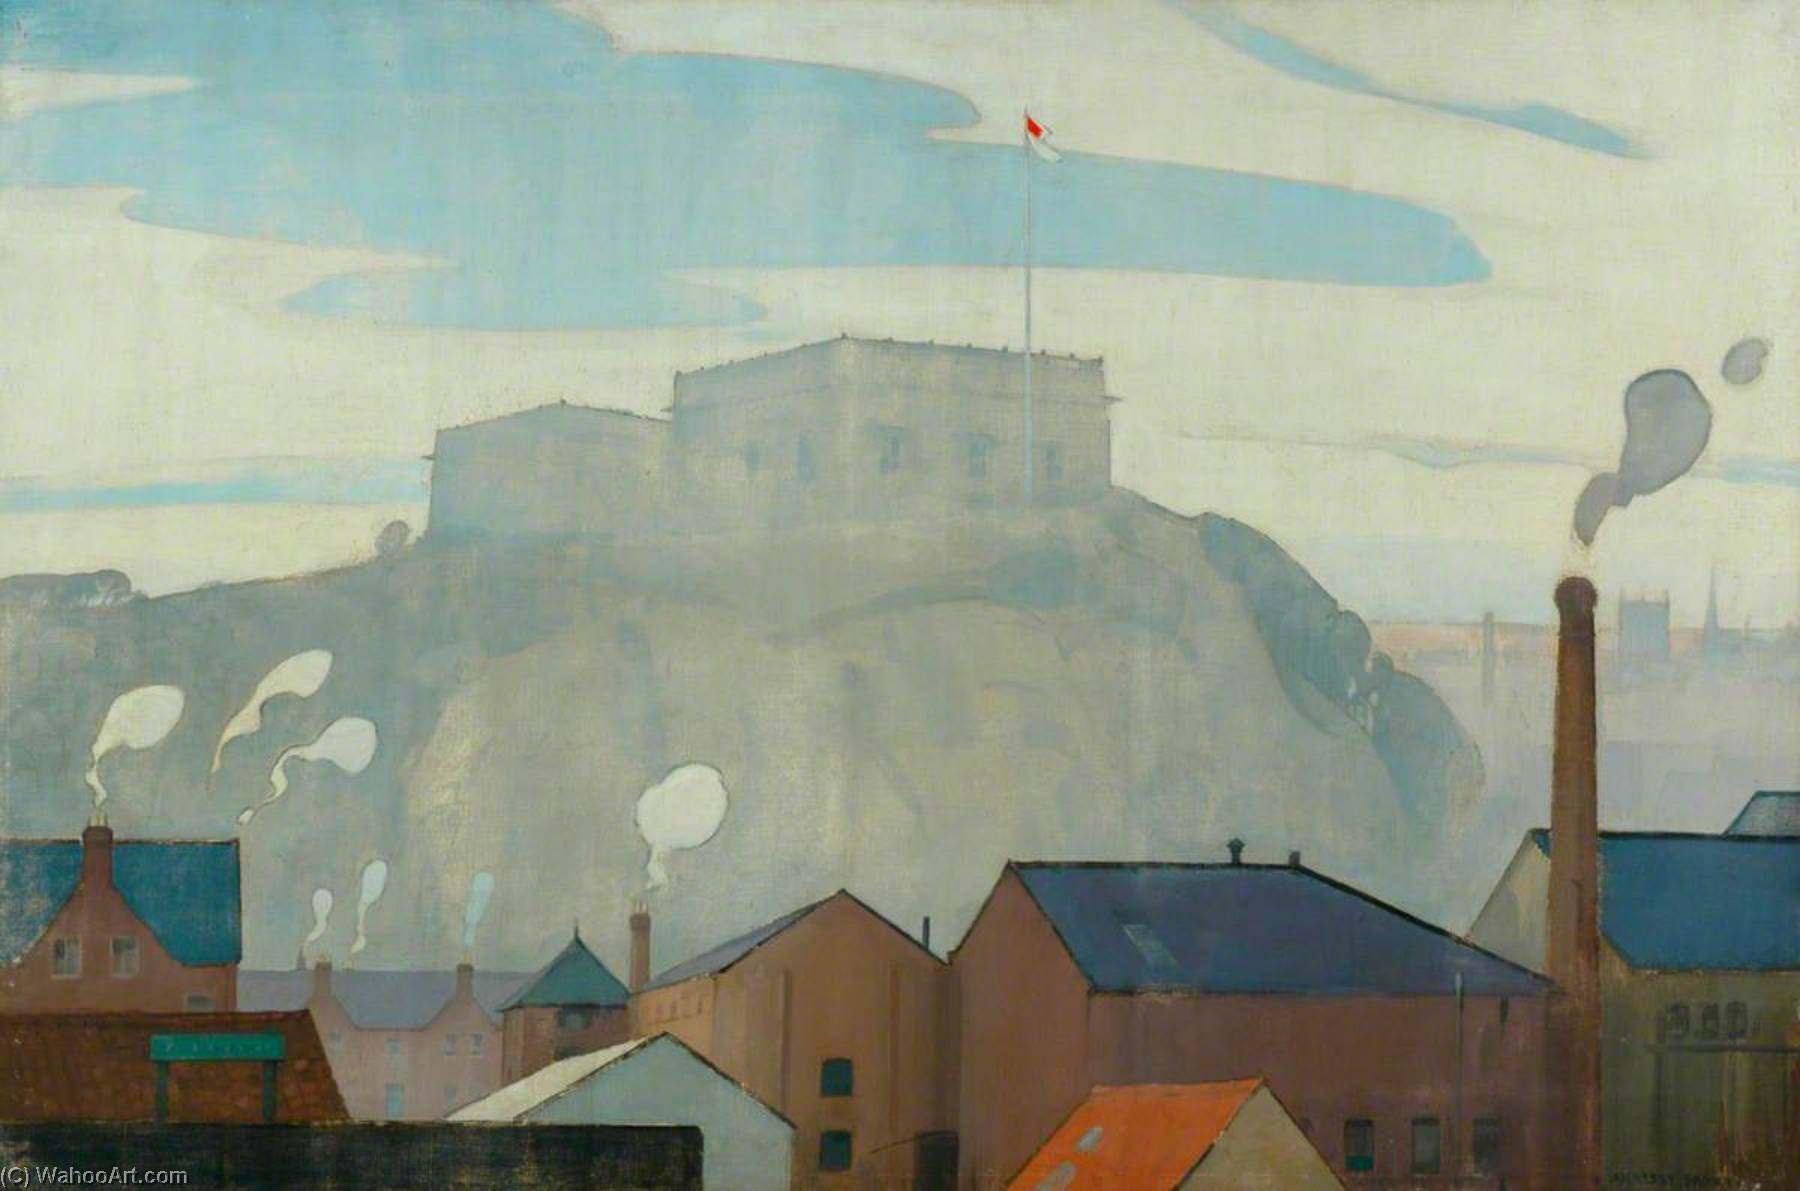 Nottingham Castle The Centre of Medieval England (London, Midland and Scottish Railway poster artwork), Oil On Canvas by John Alfred Arnesby Brown